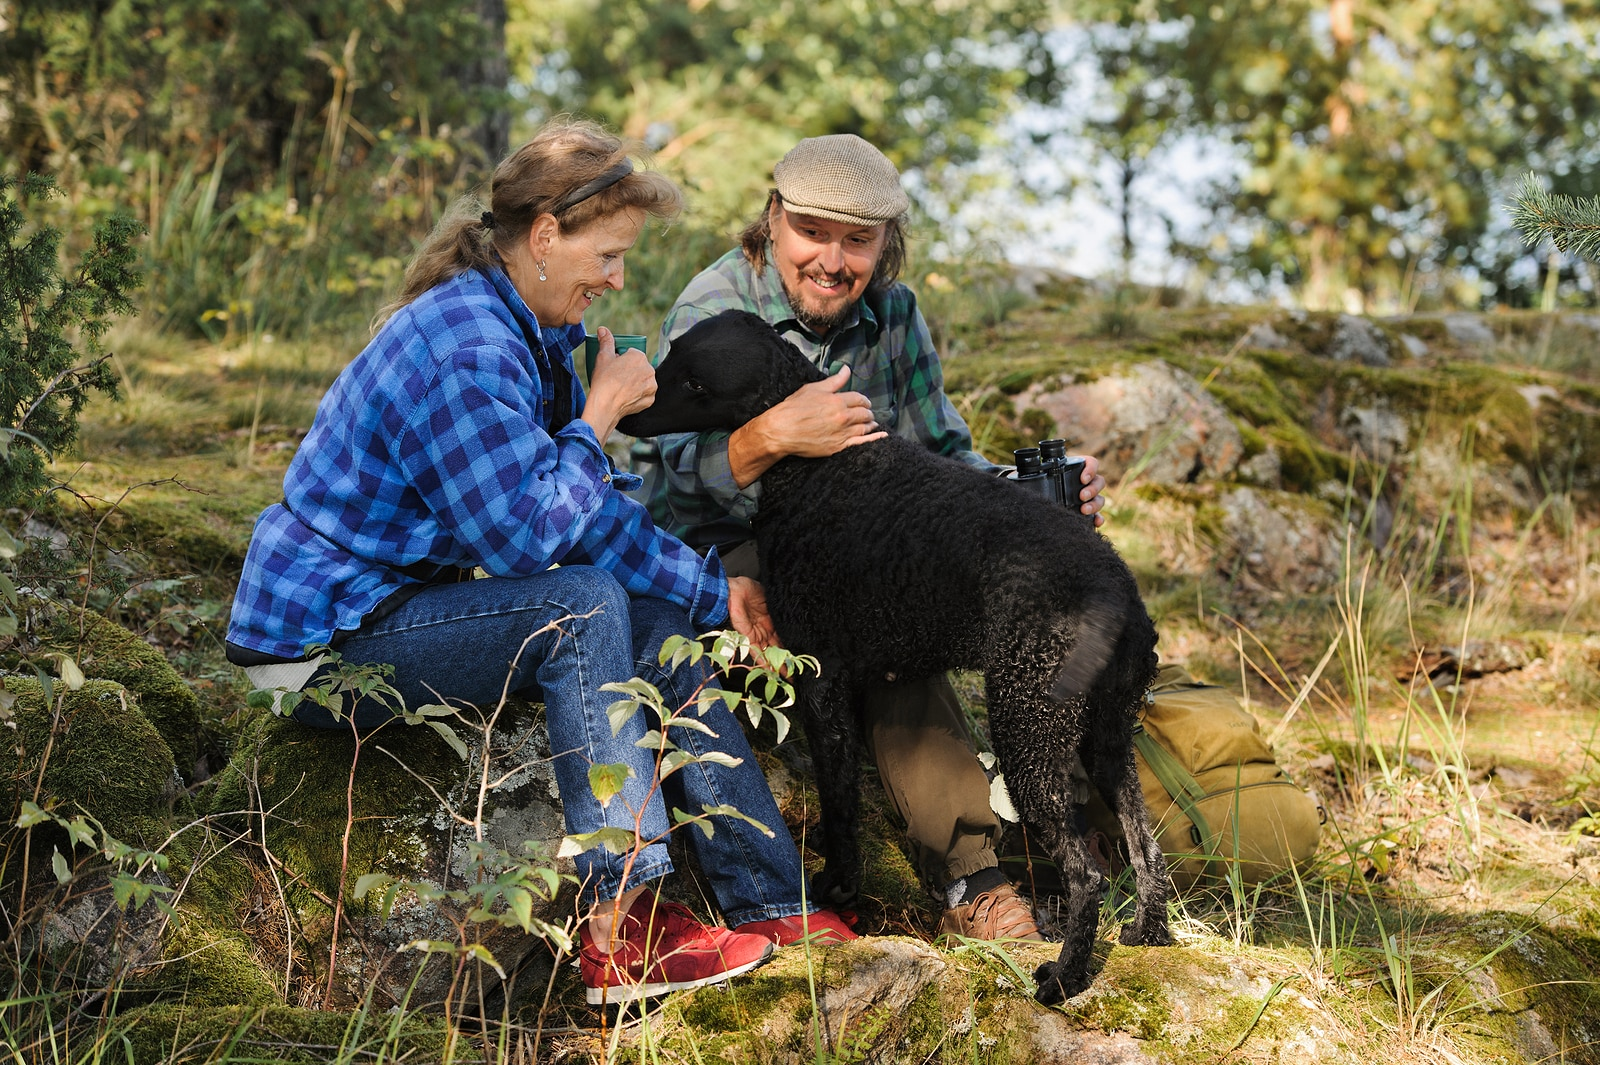 Senior couple playing with their pet dog while out hiking. The dog is a curly haired retriever.